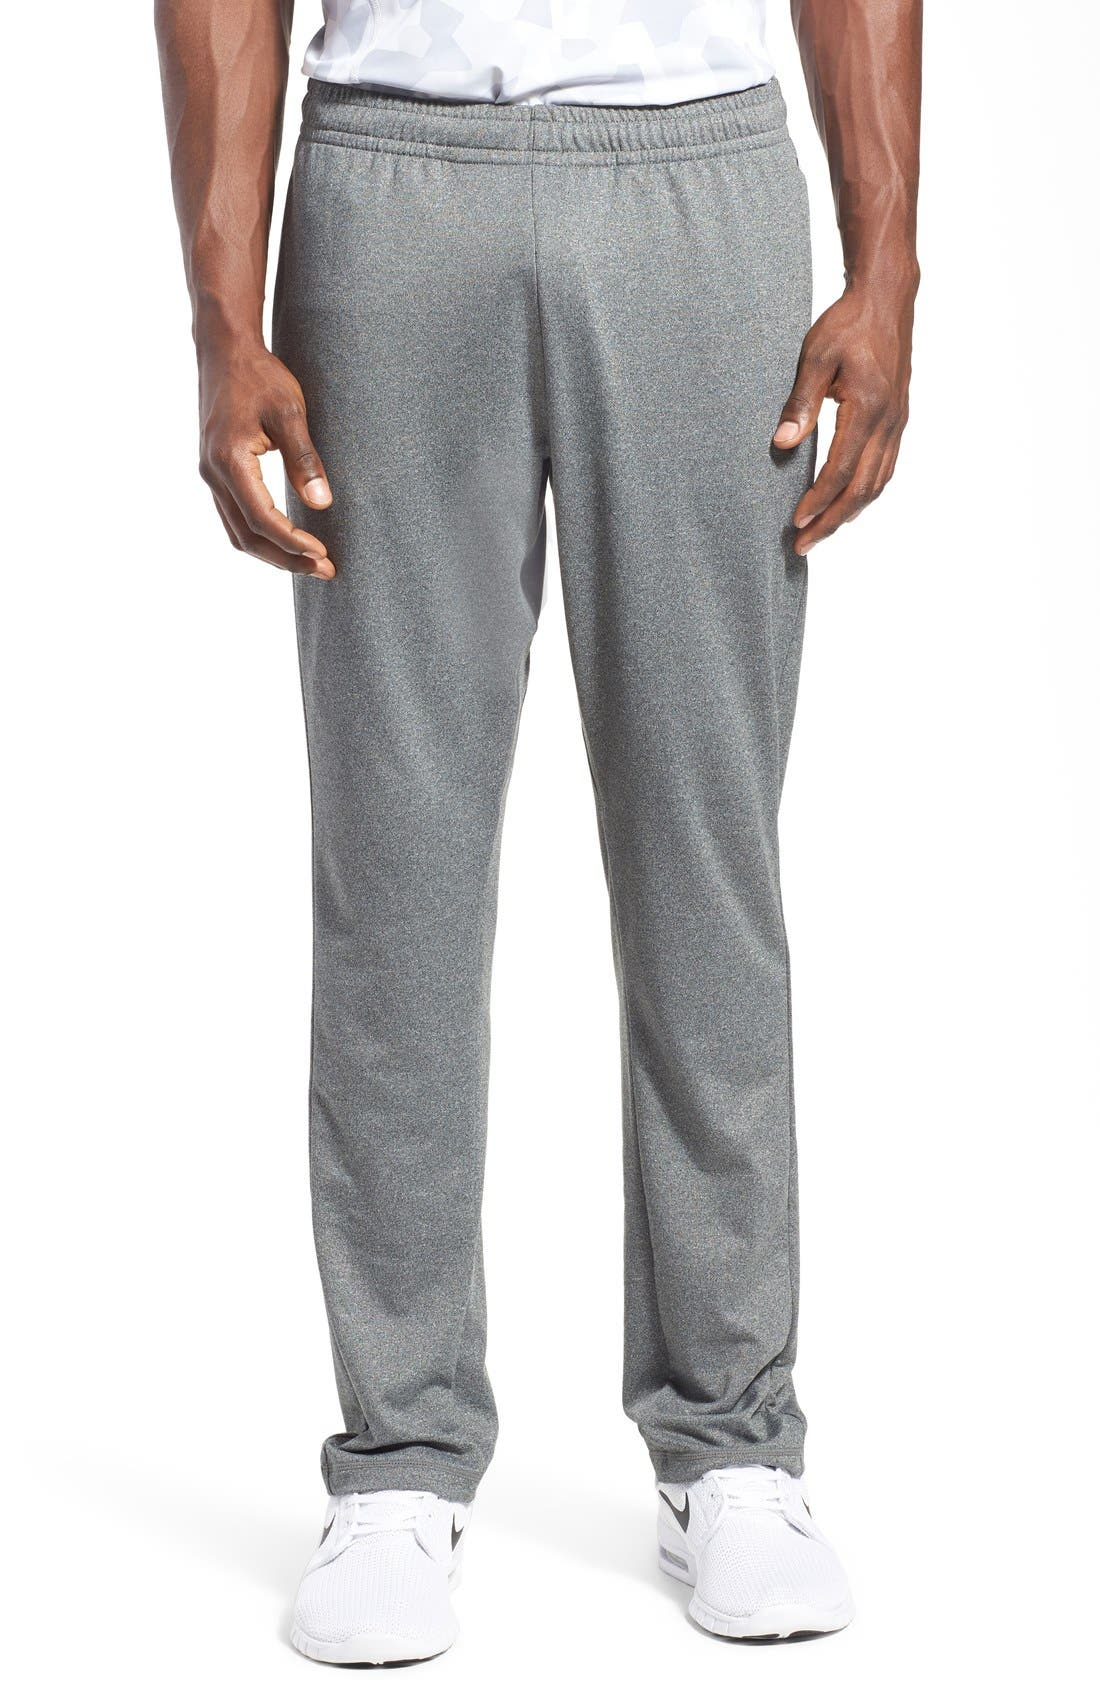 'Pyrite' Tapered Fit Knit Athletic Pants,                         Main,                         color, GREY OBSIDIAN